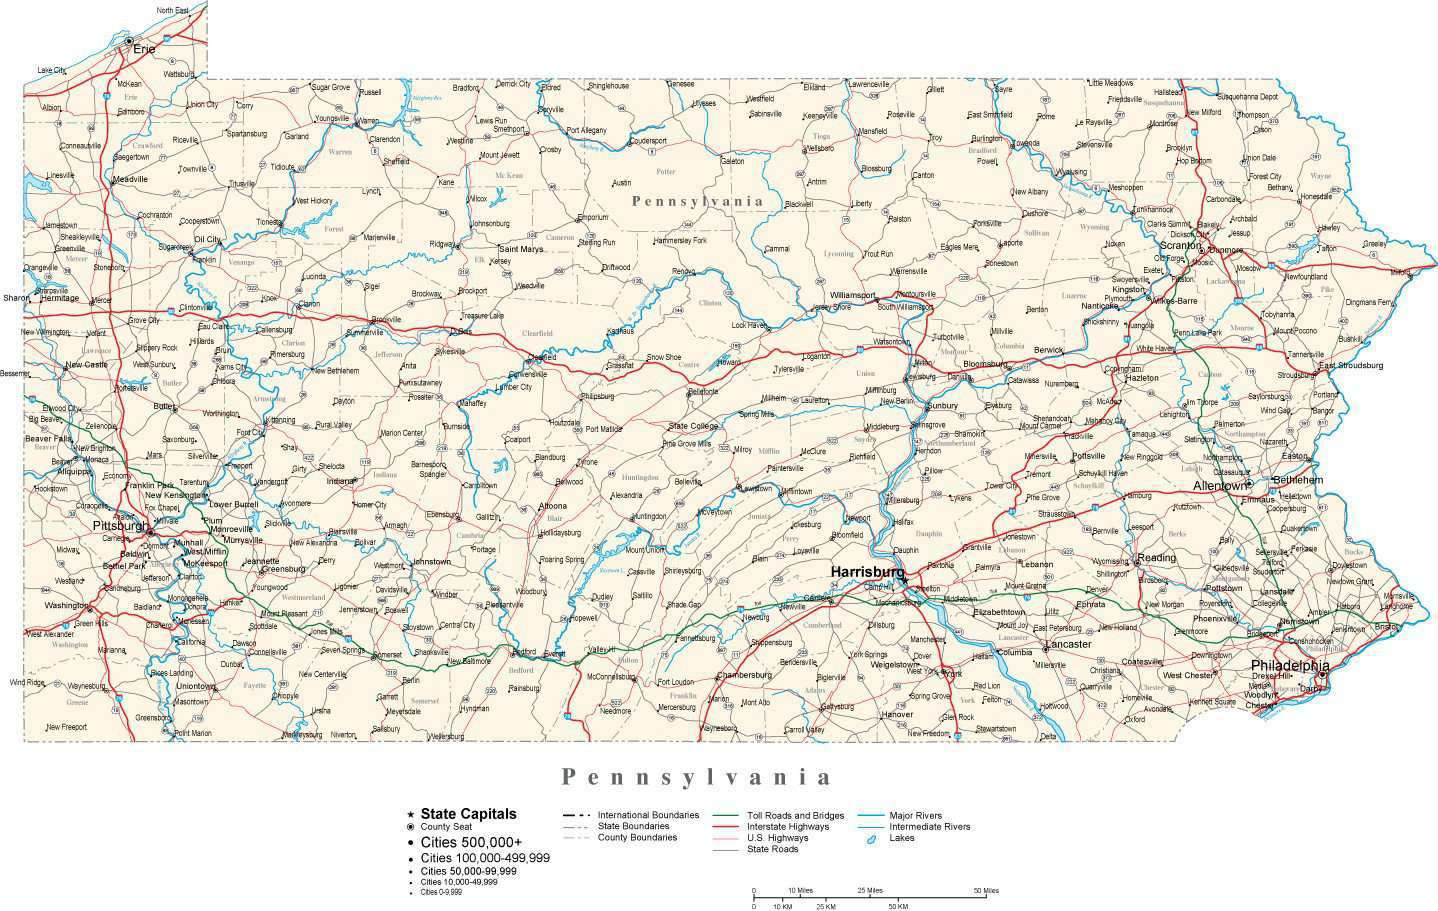 Image of: Pennsylvania State Map In Fit Together Style To Match Other States